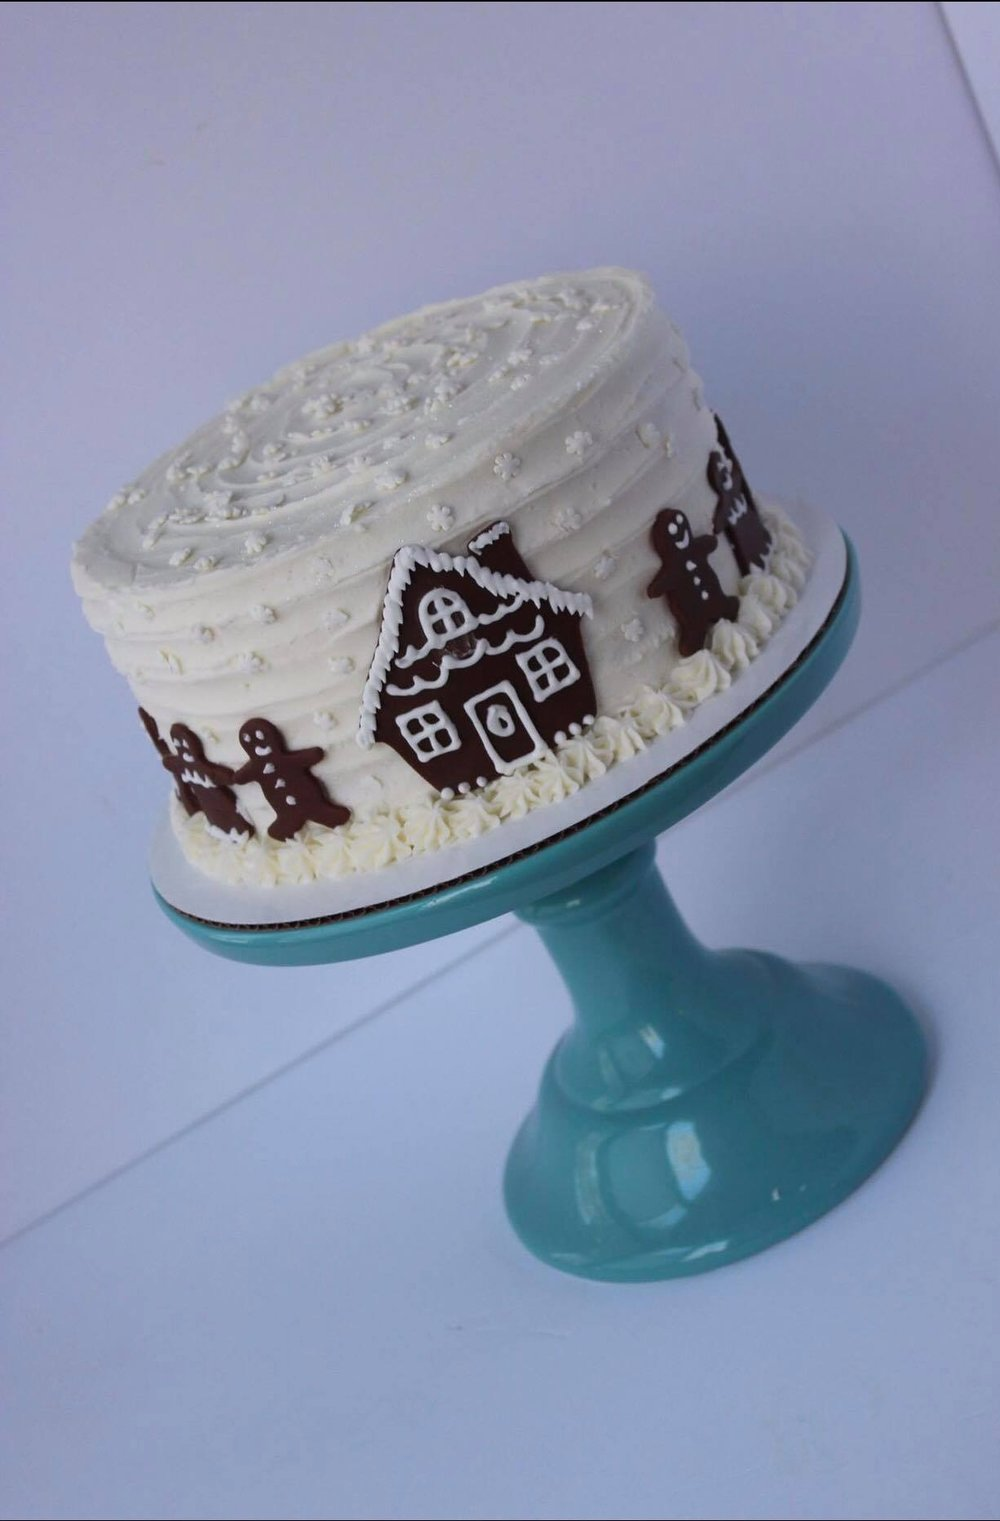 Gingerbread House Cake - $50 6 inch$60 8 inch$70 9 inch